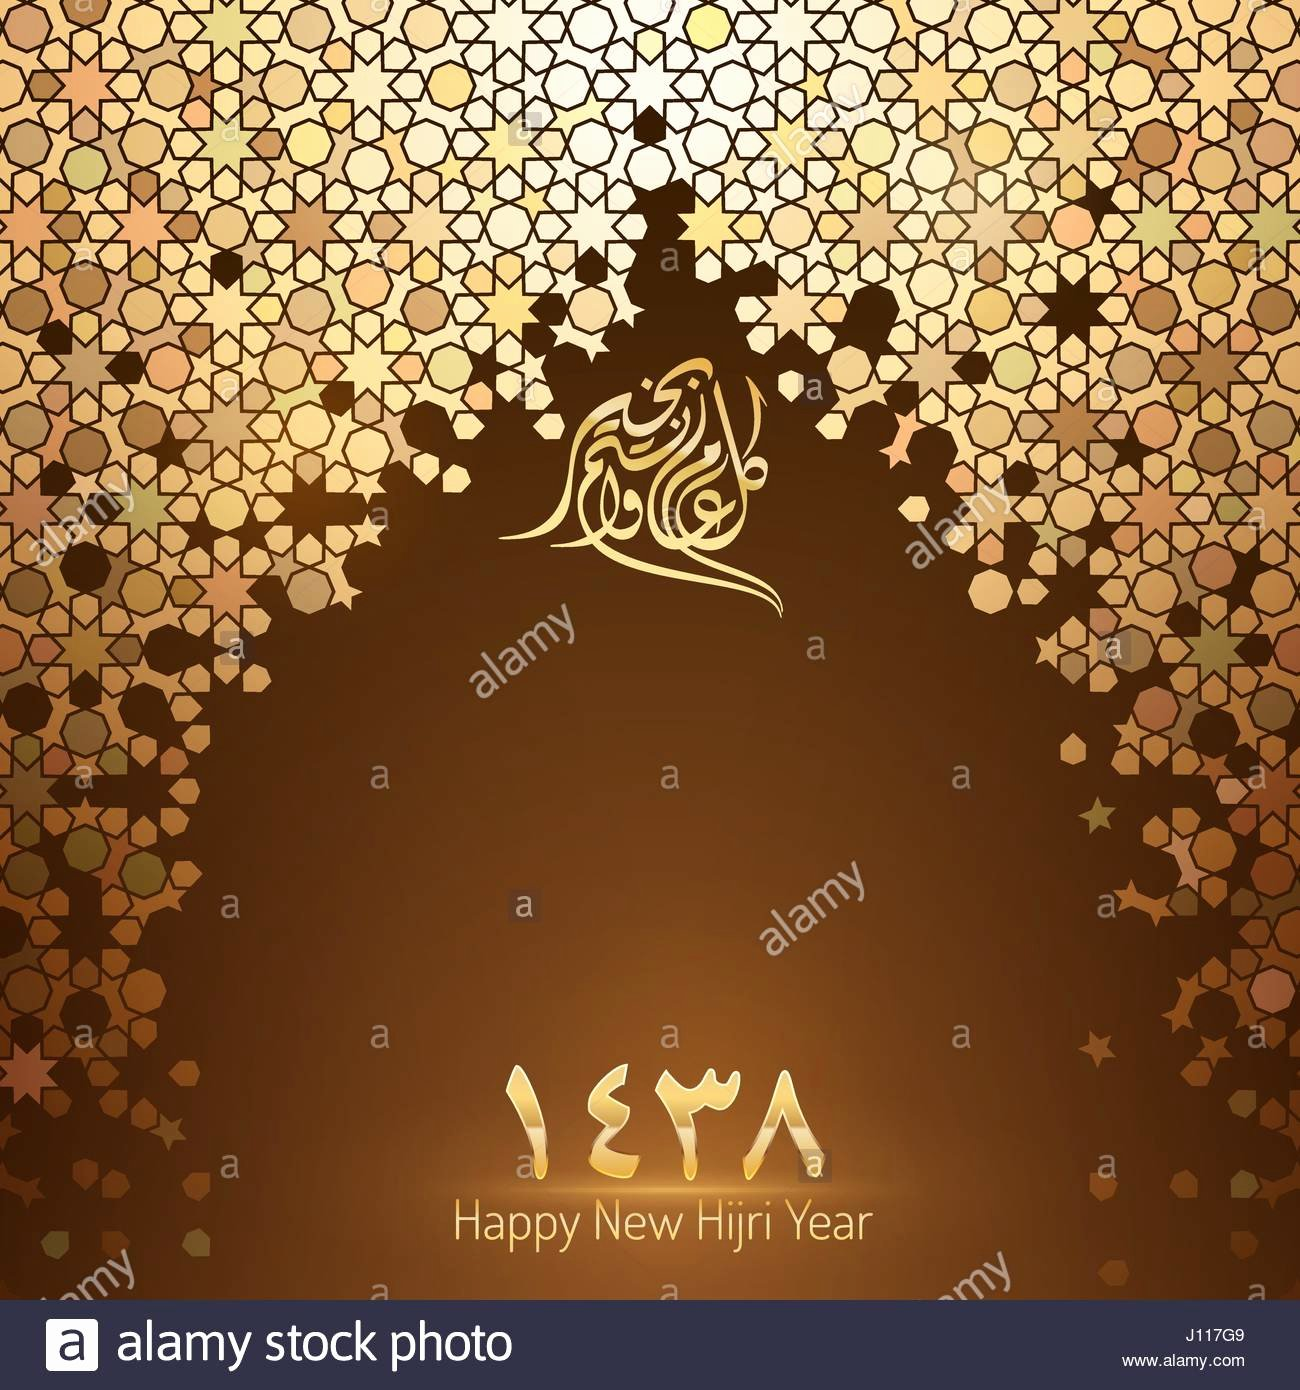 New Year Card Template Fresh islamic New Hijri Year 1438 Vector Greeting Card Template Stock Vector Art & Illustration